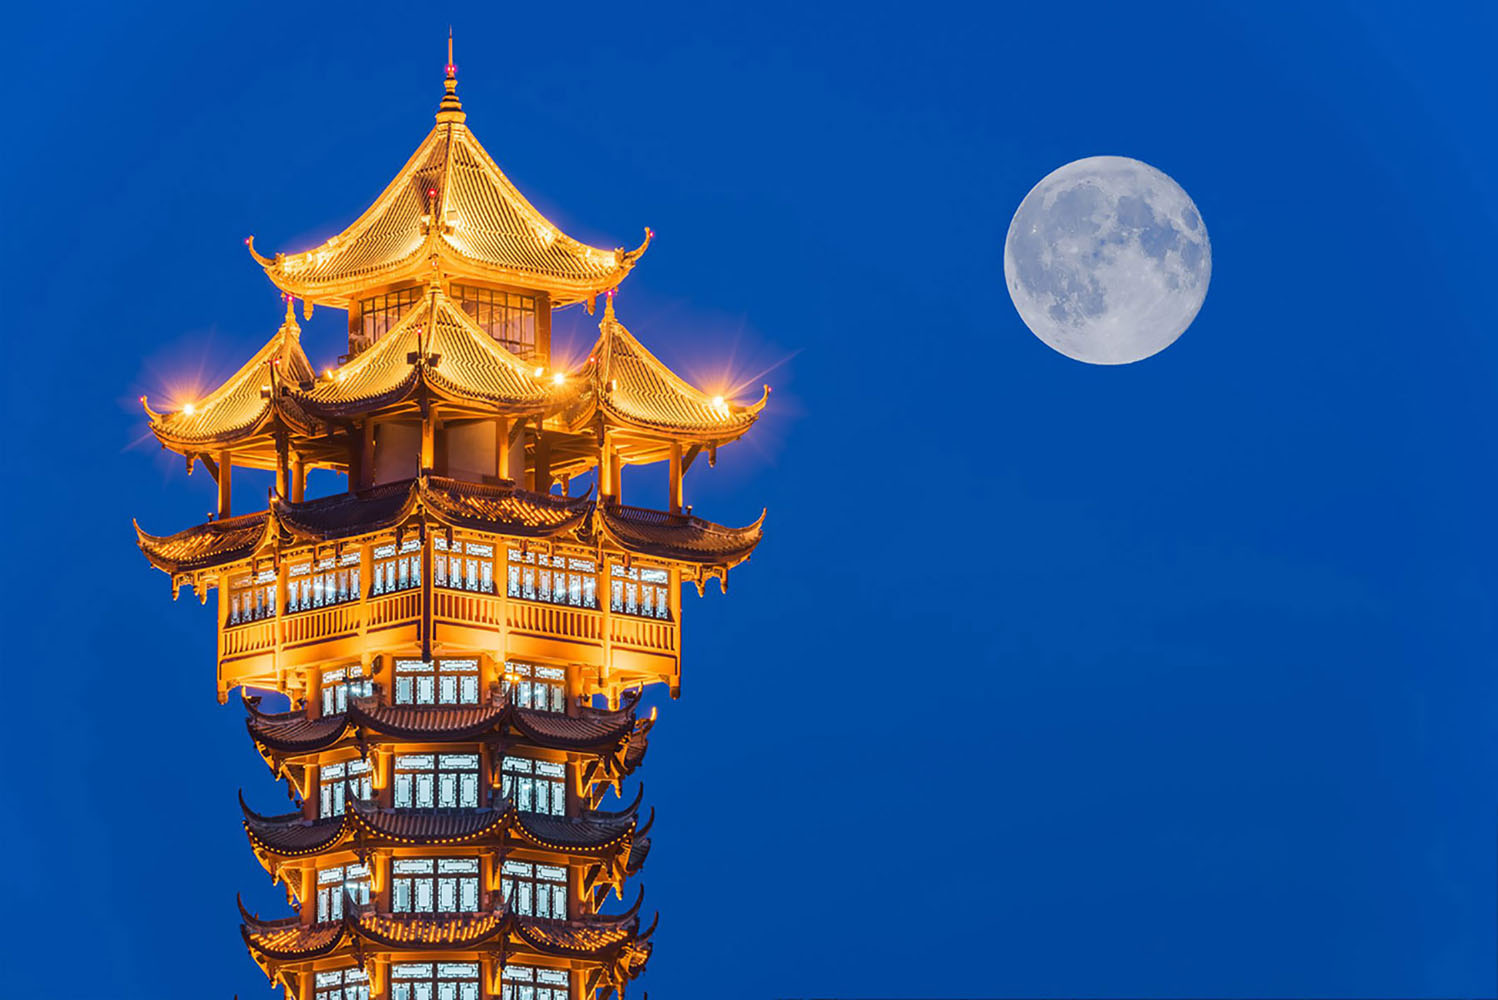 Chinese traditional tower illuminated at night